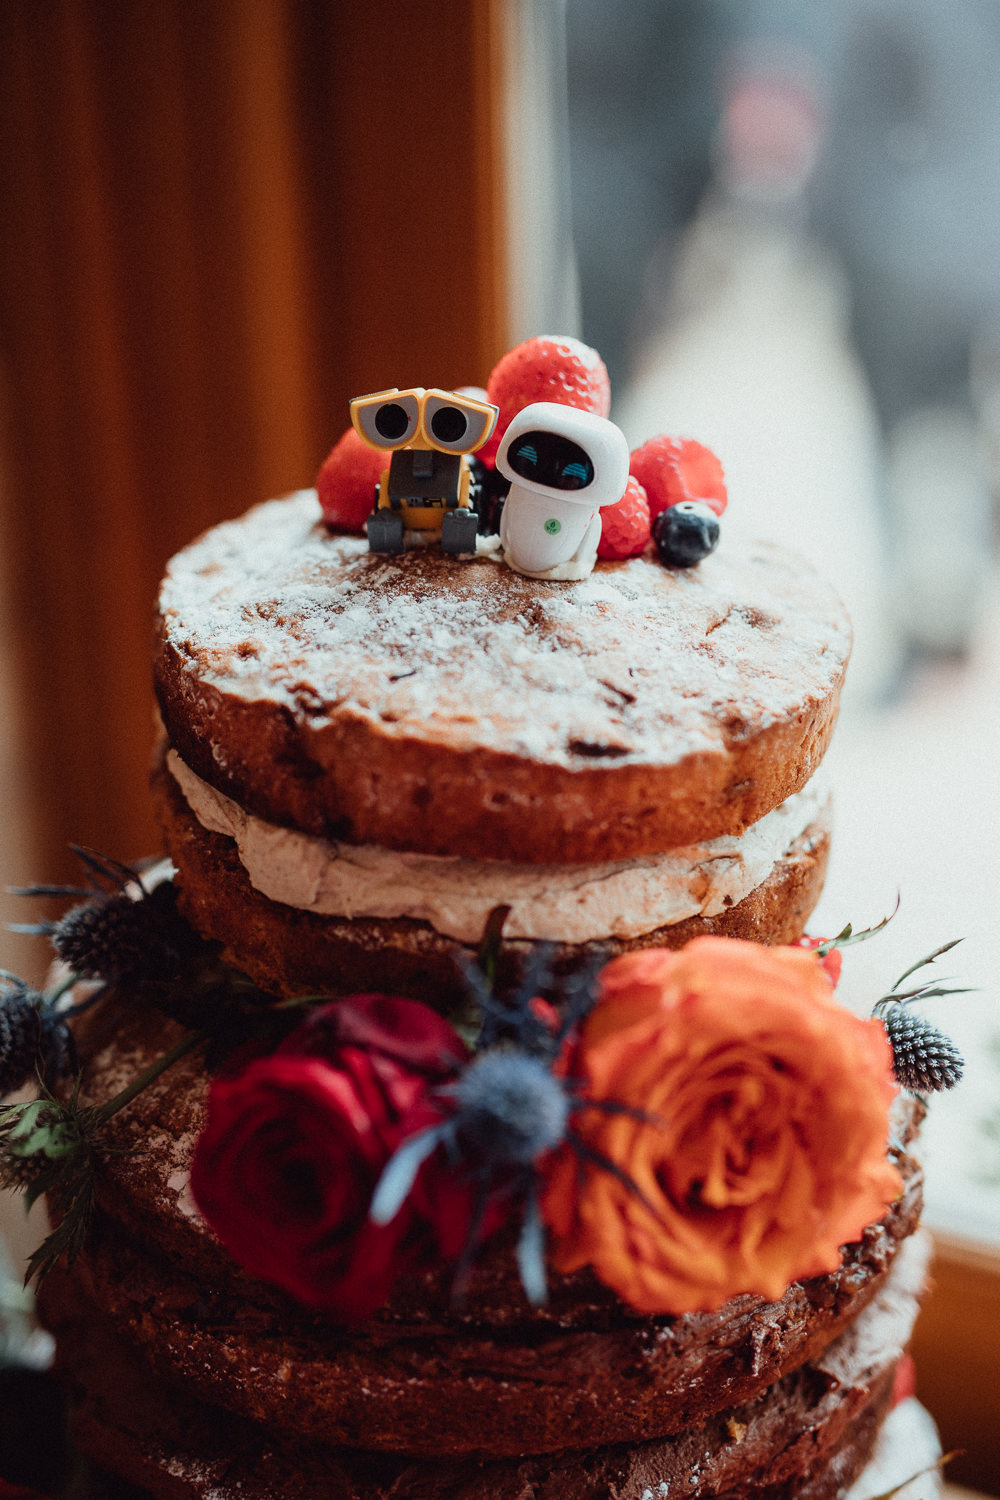 Naked Cake Victoria Sponge Flowers Icing Fruit Log Disney Pixar Topper Oxleaze Barn Wedding Emily and Steve Photography